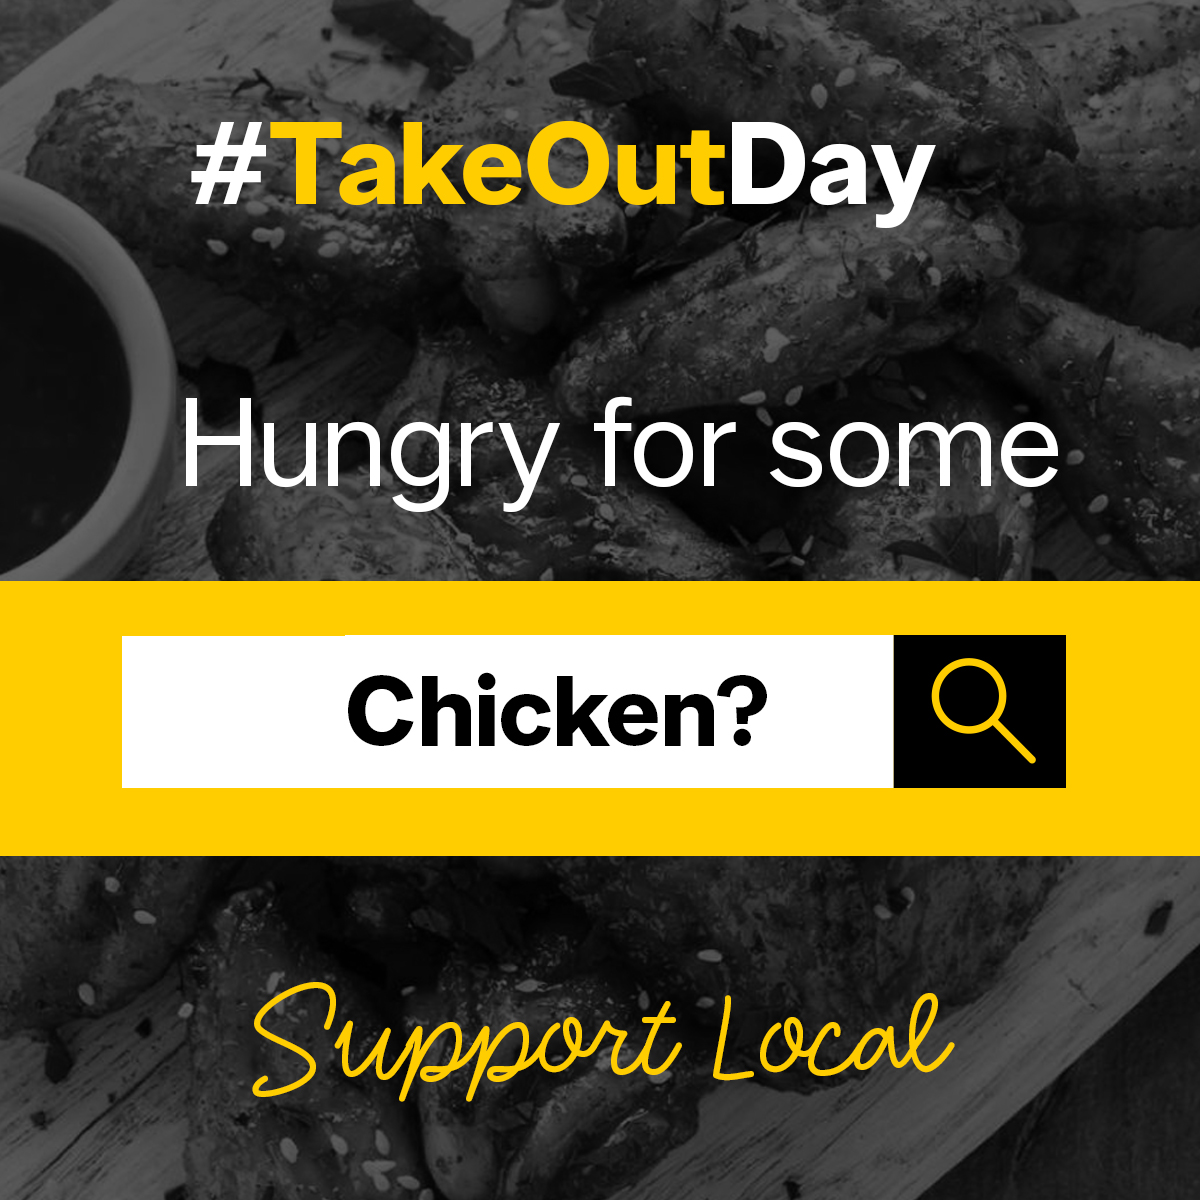 Support rotisserie restaurants in your neighbourhood and order out tonight for #TakeoutDay!   ----> https://t.co/IYJnoPQgtR https://t.co/97AUaFX402